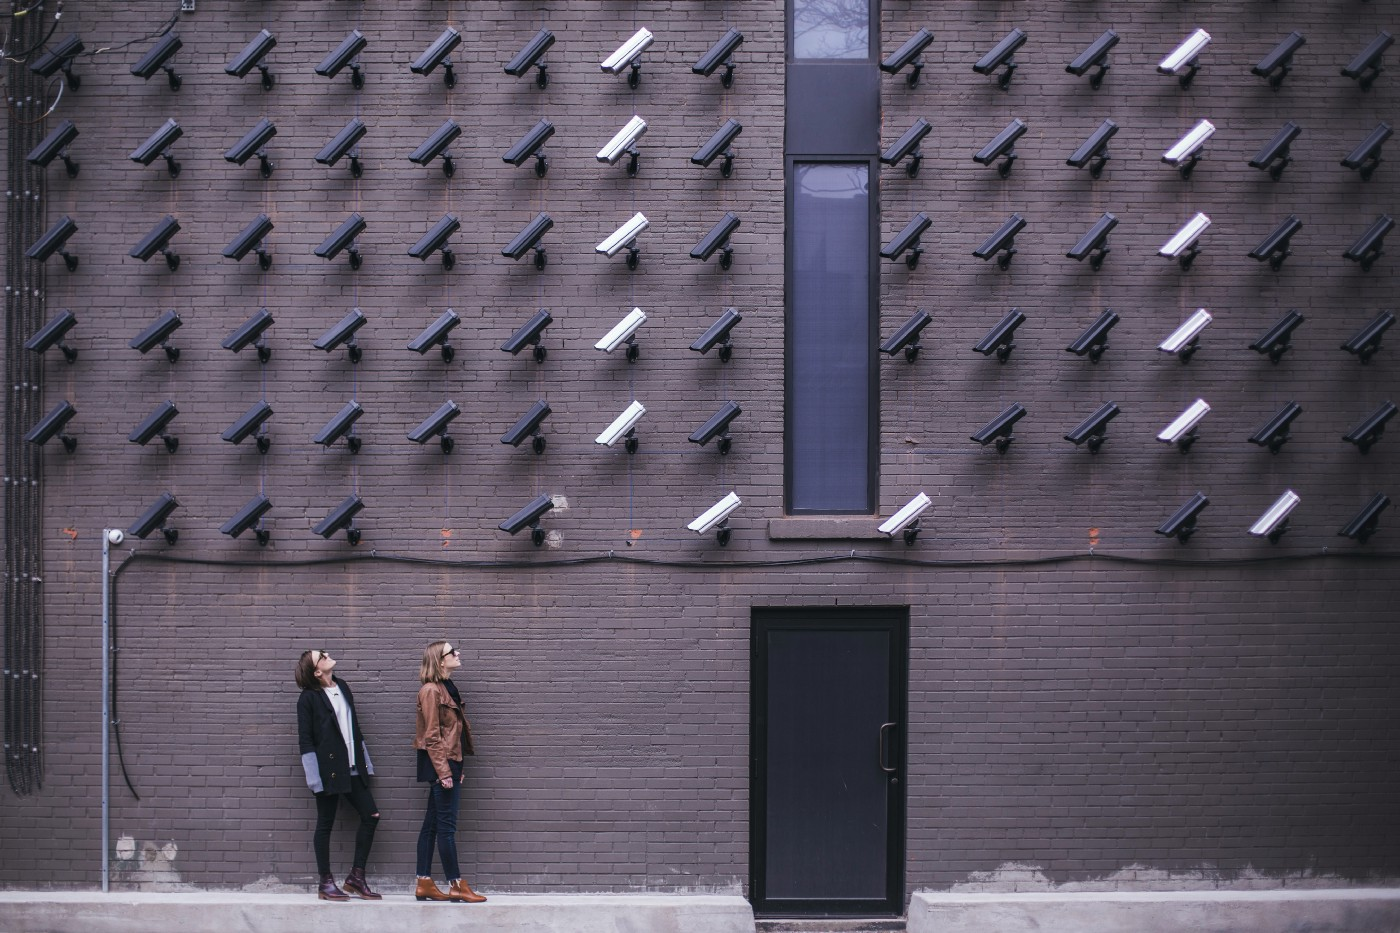 surveillance cameras looking down at two teenagers